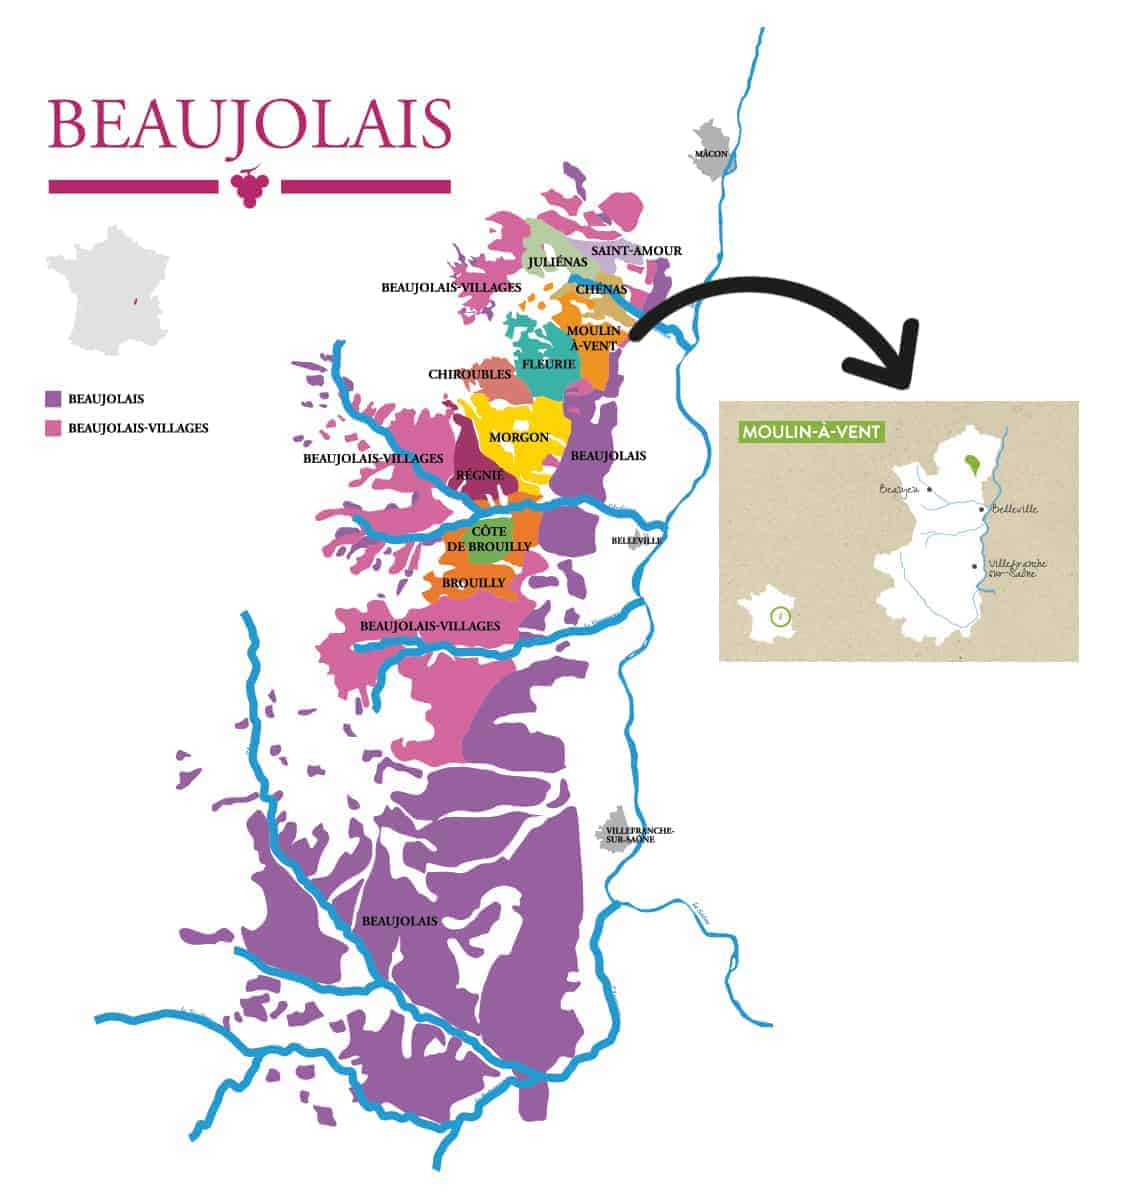 Map of Beaujolais with a map of Moulin à Vent inserted